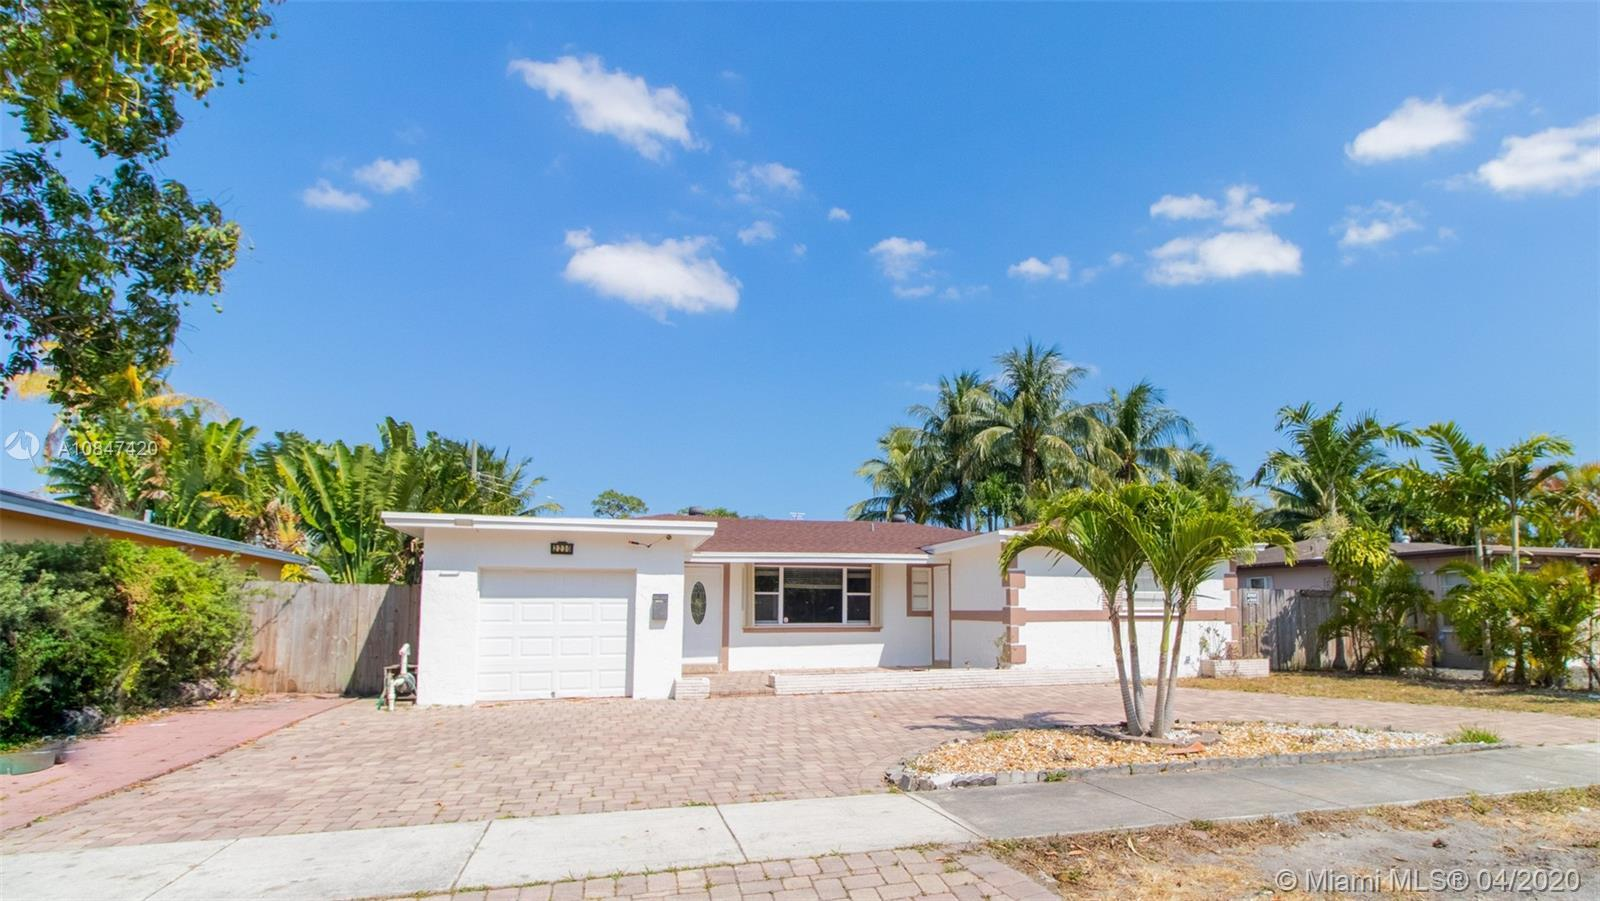 Beautiful and presentable curve-appeal 1841SF house with 8,084sf lot in an absolutely nice and quiet